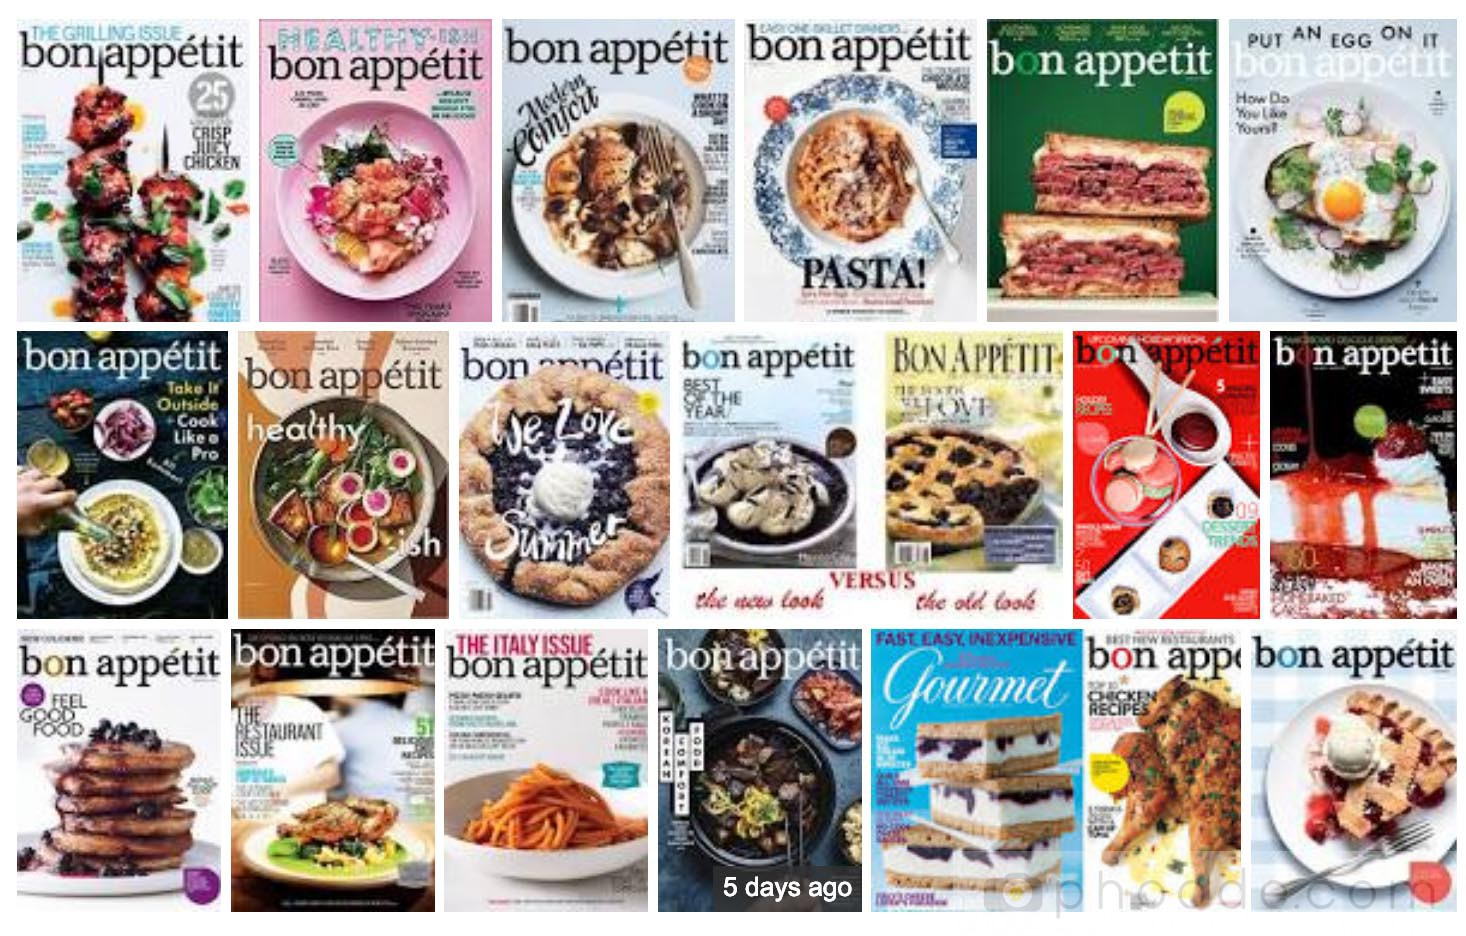 food magazine photoeditor cover; food photography jobs; food photography career; art food magazine cover; international platform for food photographers; international online association of food photographers; food photography news; food photography awards; trends in food photography; contest food photography; website for people who want to become serious food photographers; we are reviewing food photography portfolios; curating the best food photography; food photography educators/mentors; creative director for food photography, culinary creative director, bon appetit magazine cover